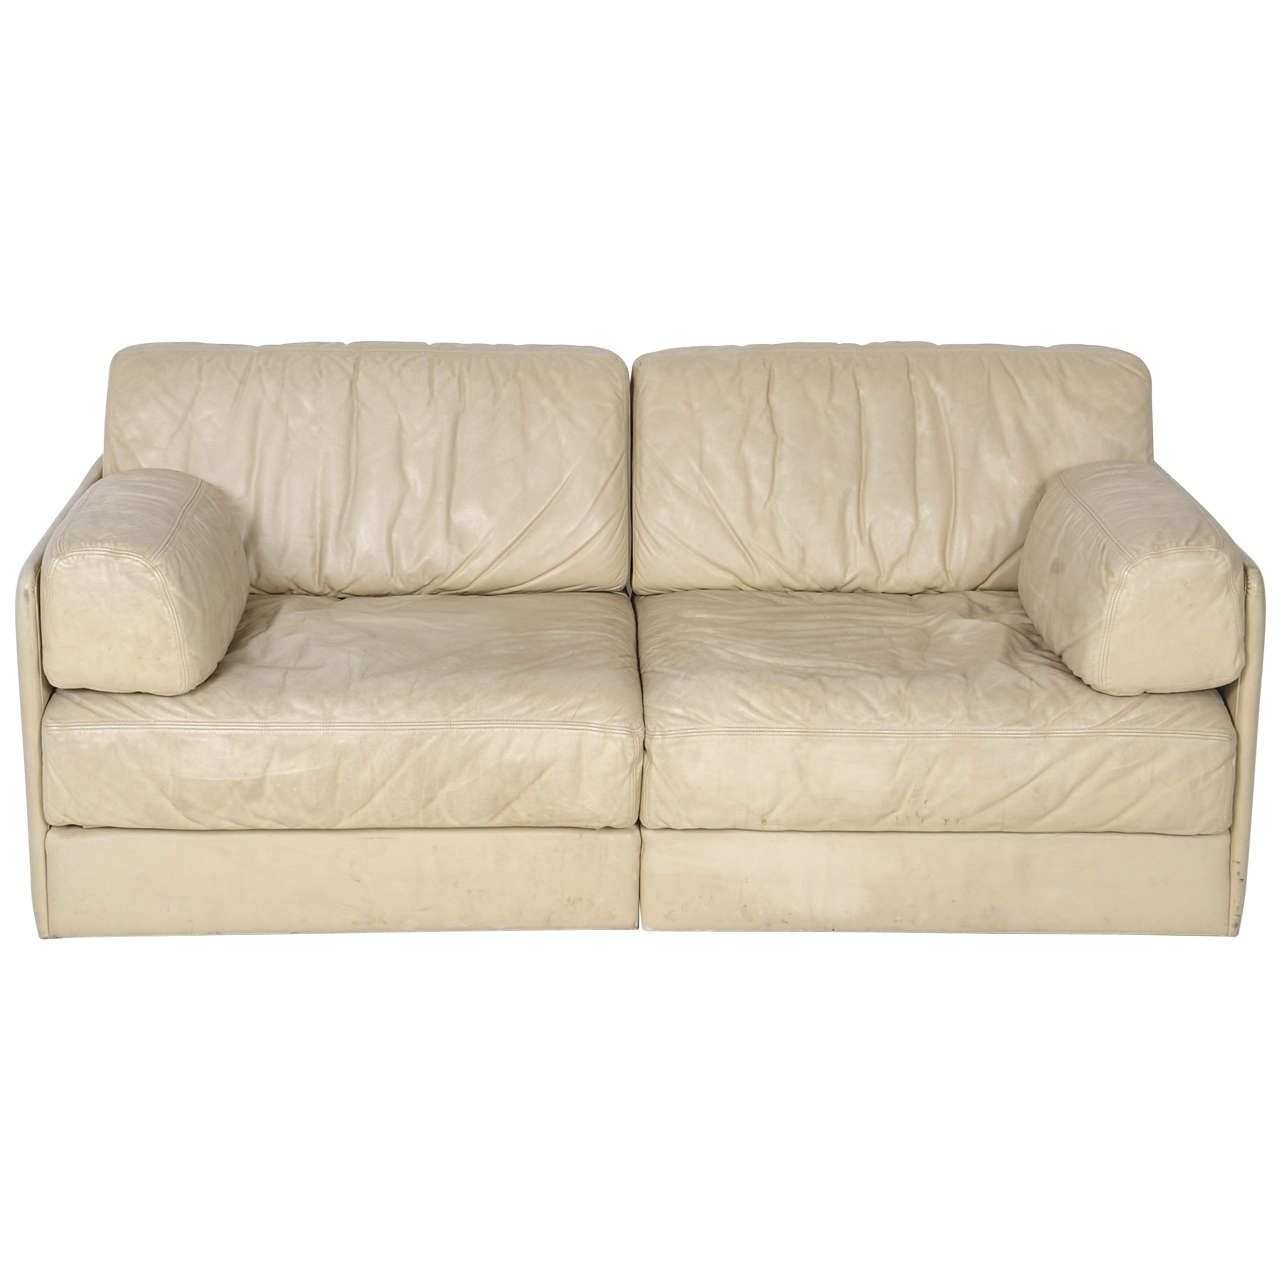 Tremendous Rare Off White De Sede Ds 76 Sectional Two Seat Sofa Bed Caraccident5 Cool Chair Designs And Ideas Caraccident5Info